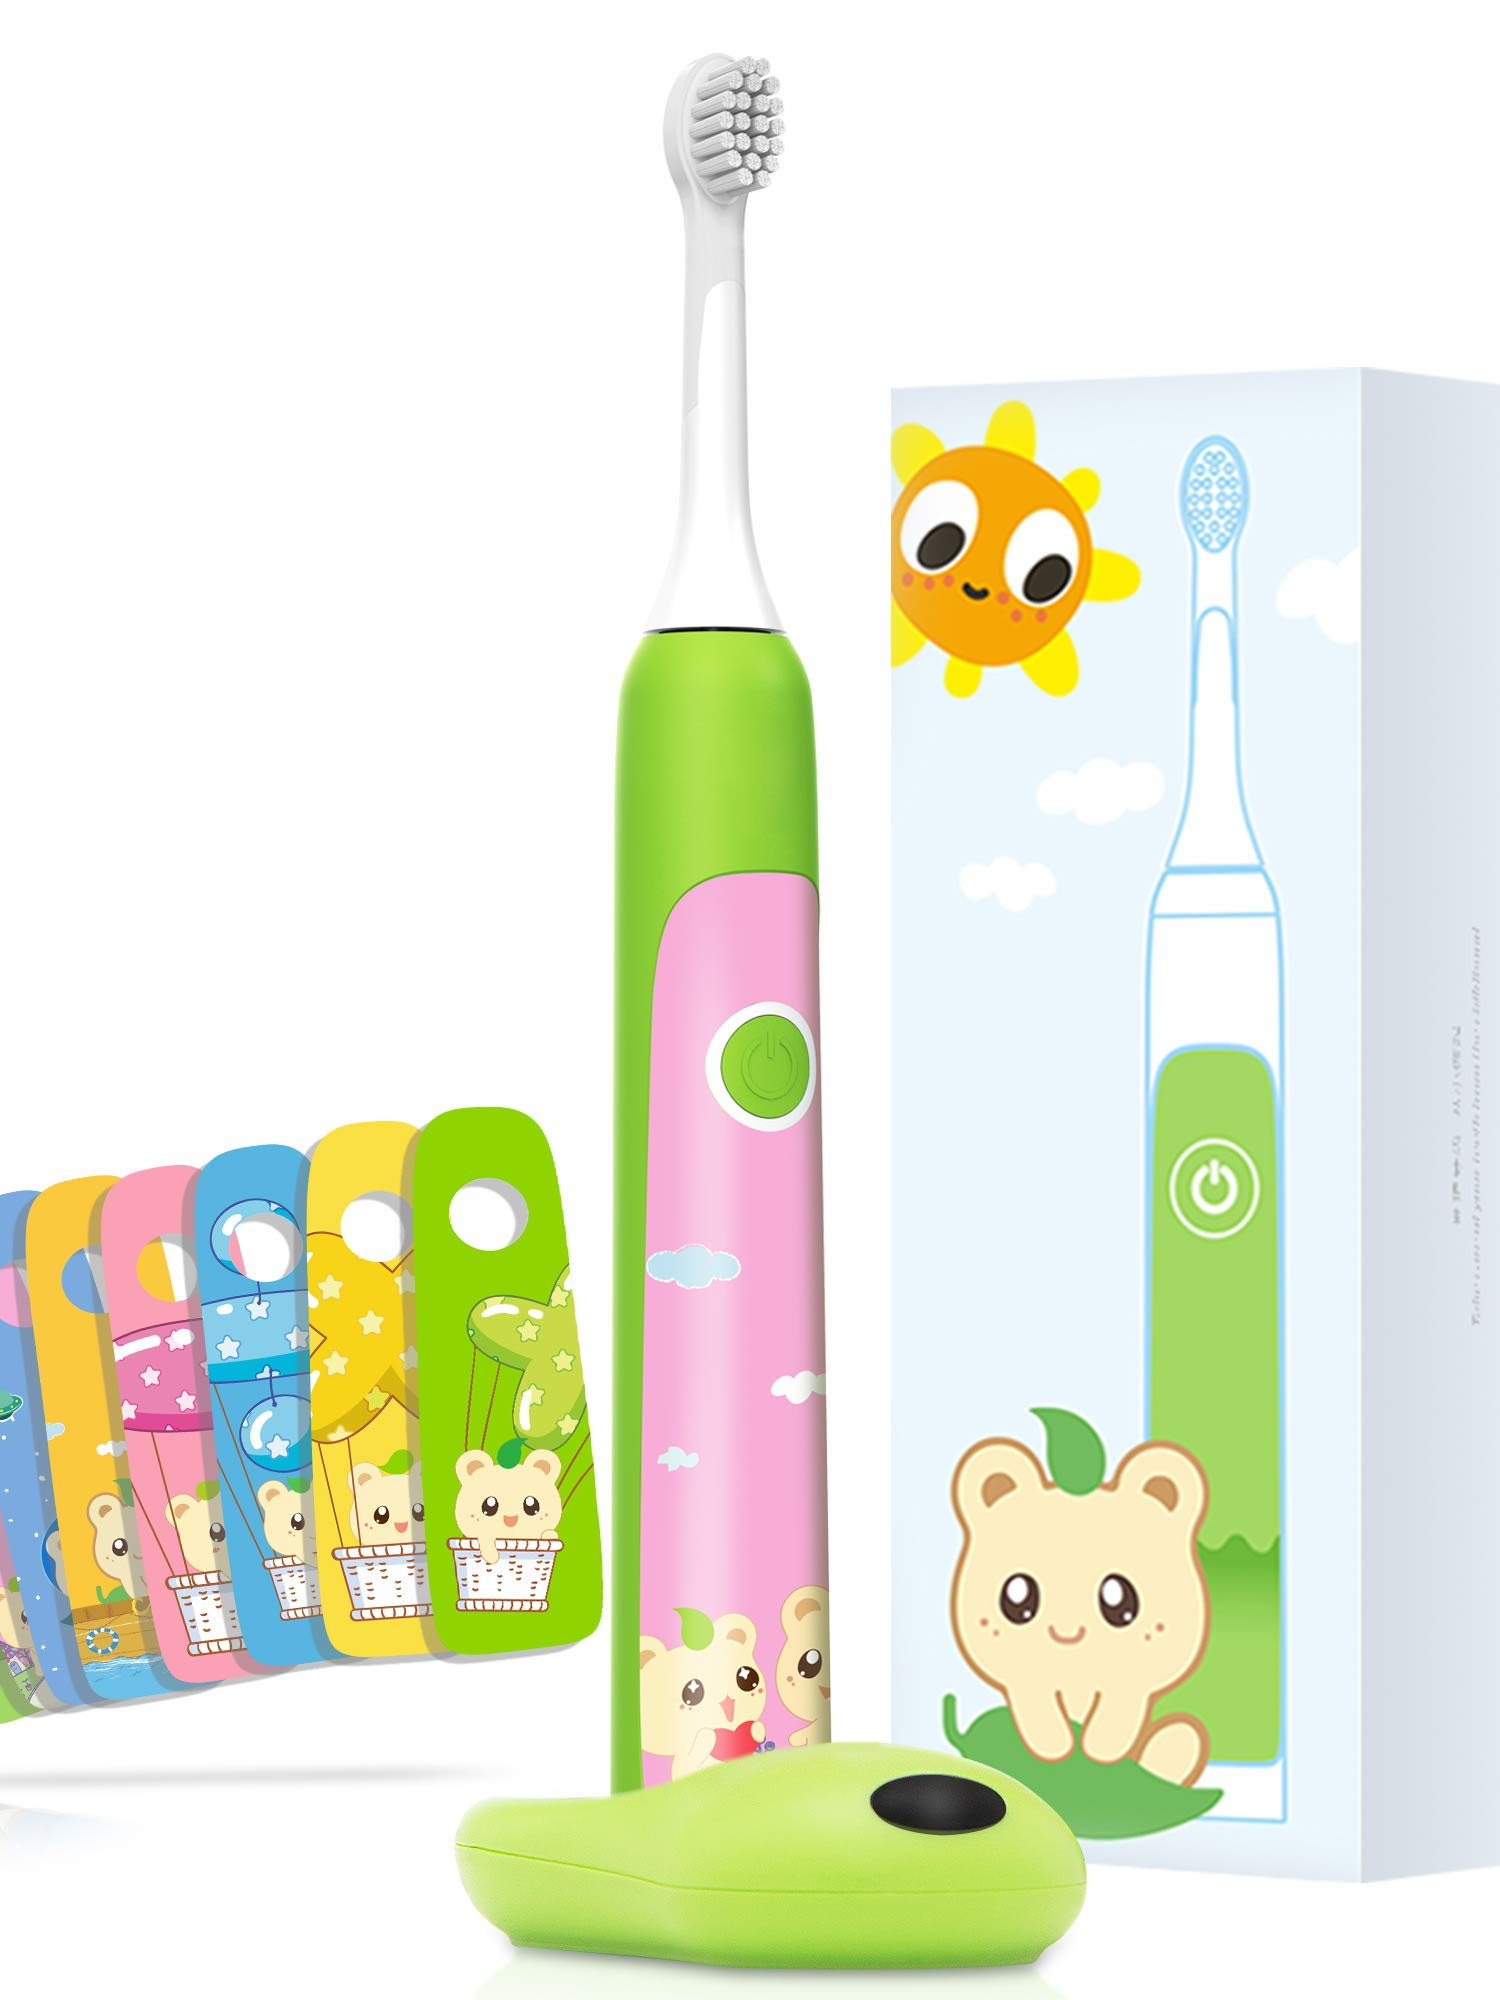 Aiwejay Kids SONIC Electric Toothbrush Reachable For ages 3-12,8 Cute Stickers, 3 Vibration Modes,Green by Aiwejay